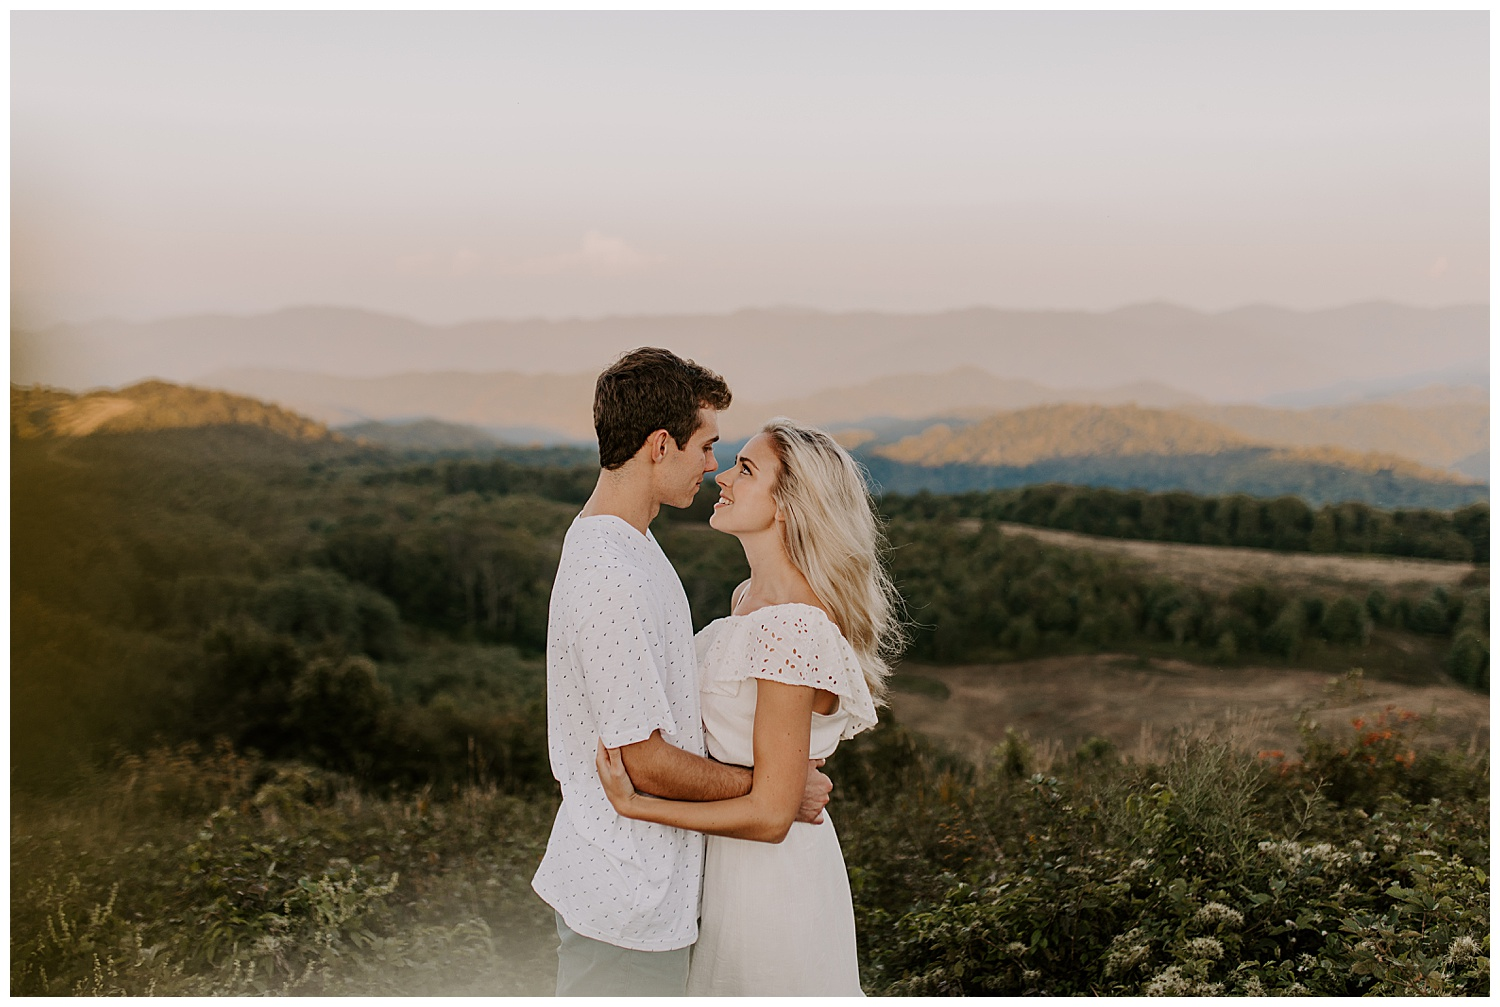 HANNAH_NICK_MAXPATCH_ENGAGEMENT2019-09-05_0003.jpg